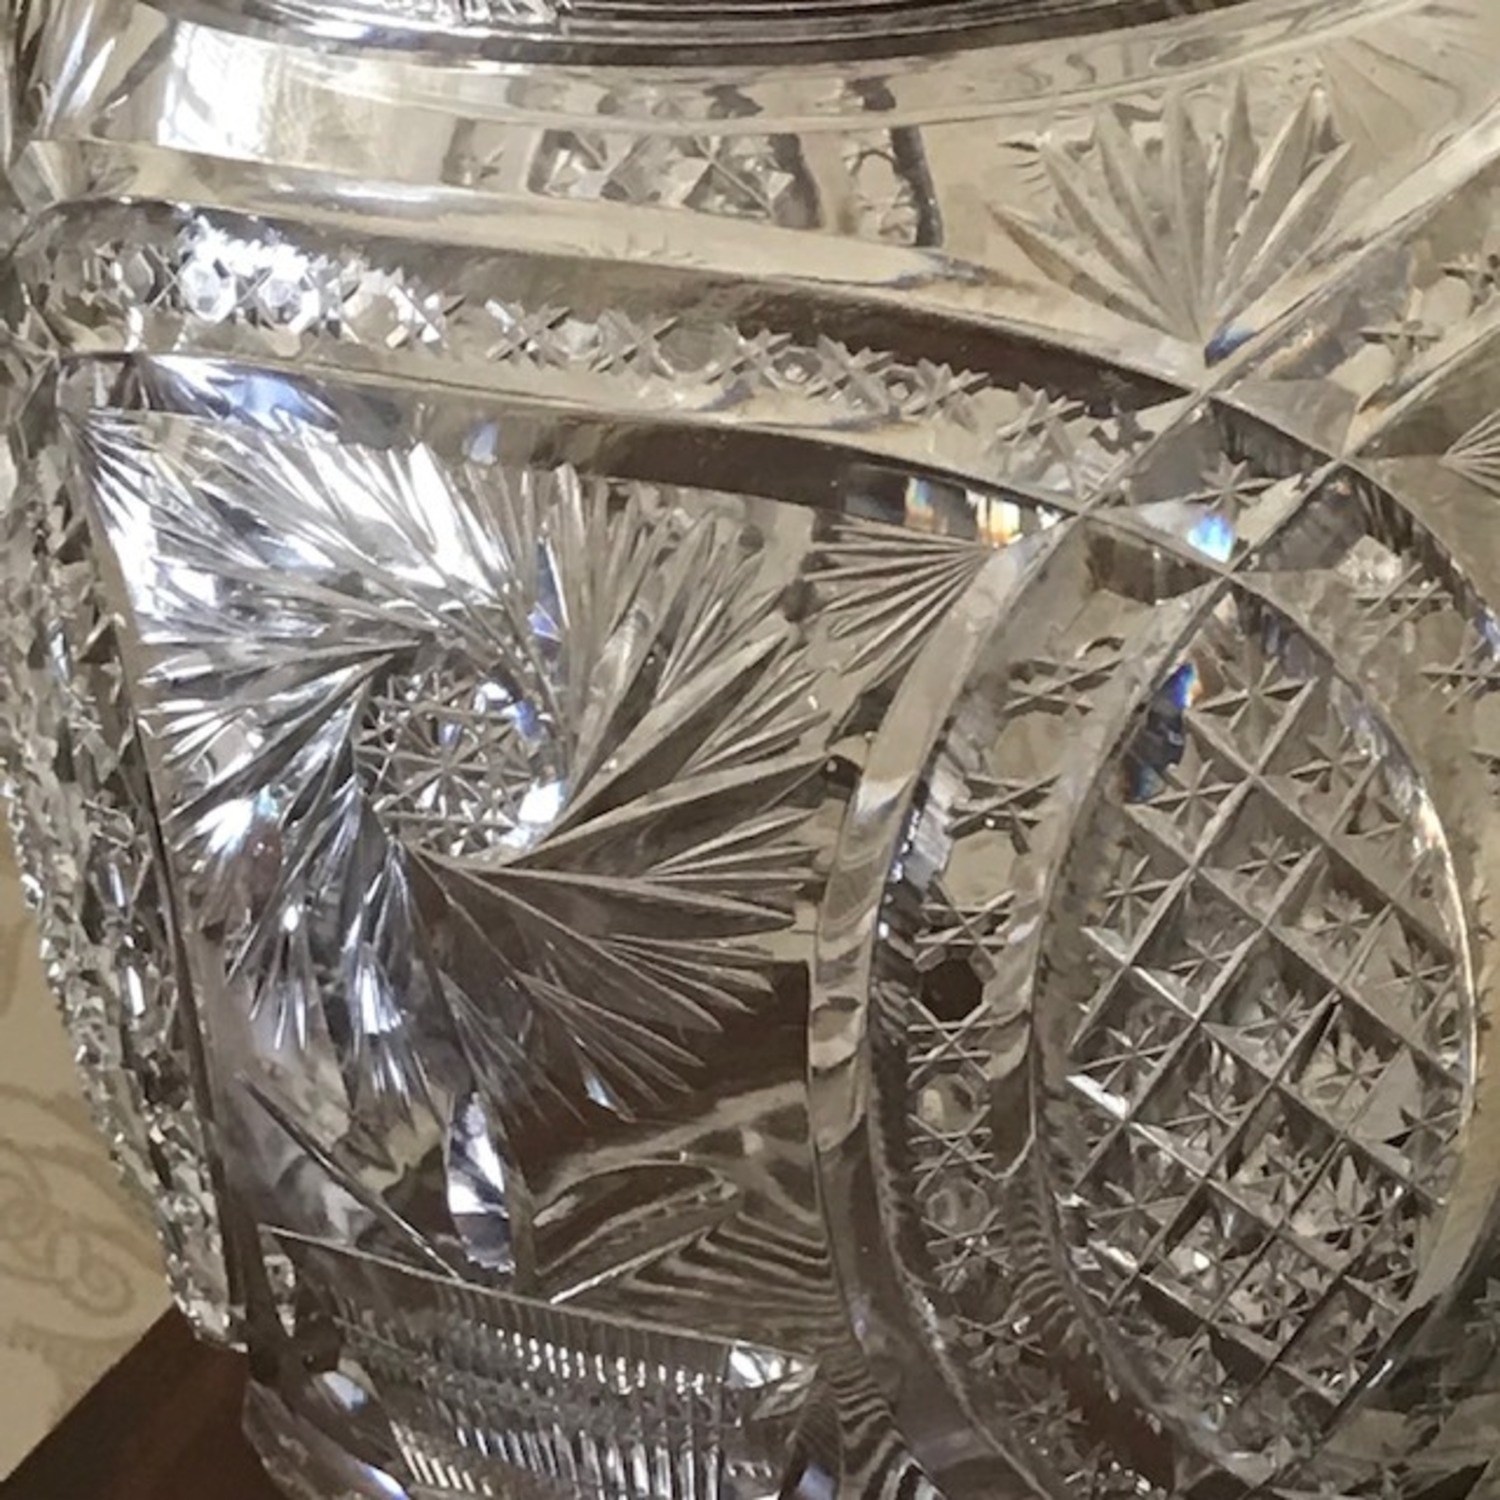 Extraordinary Antique 1800's Crystal Punch Bowl - image-3